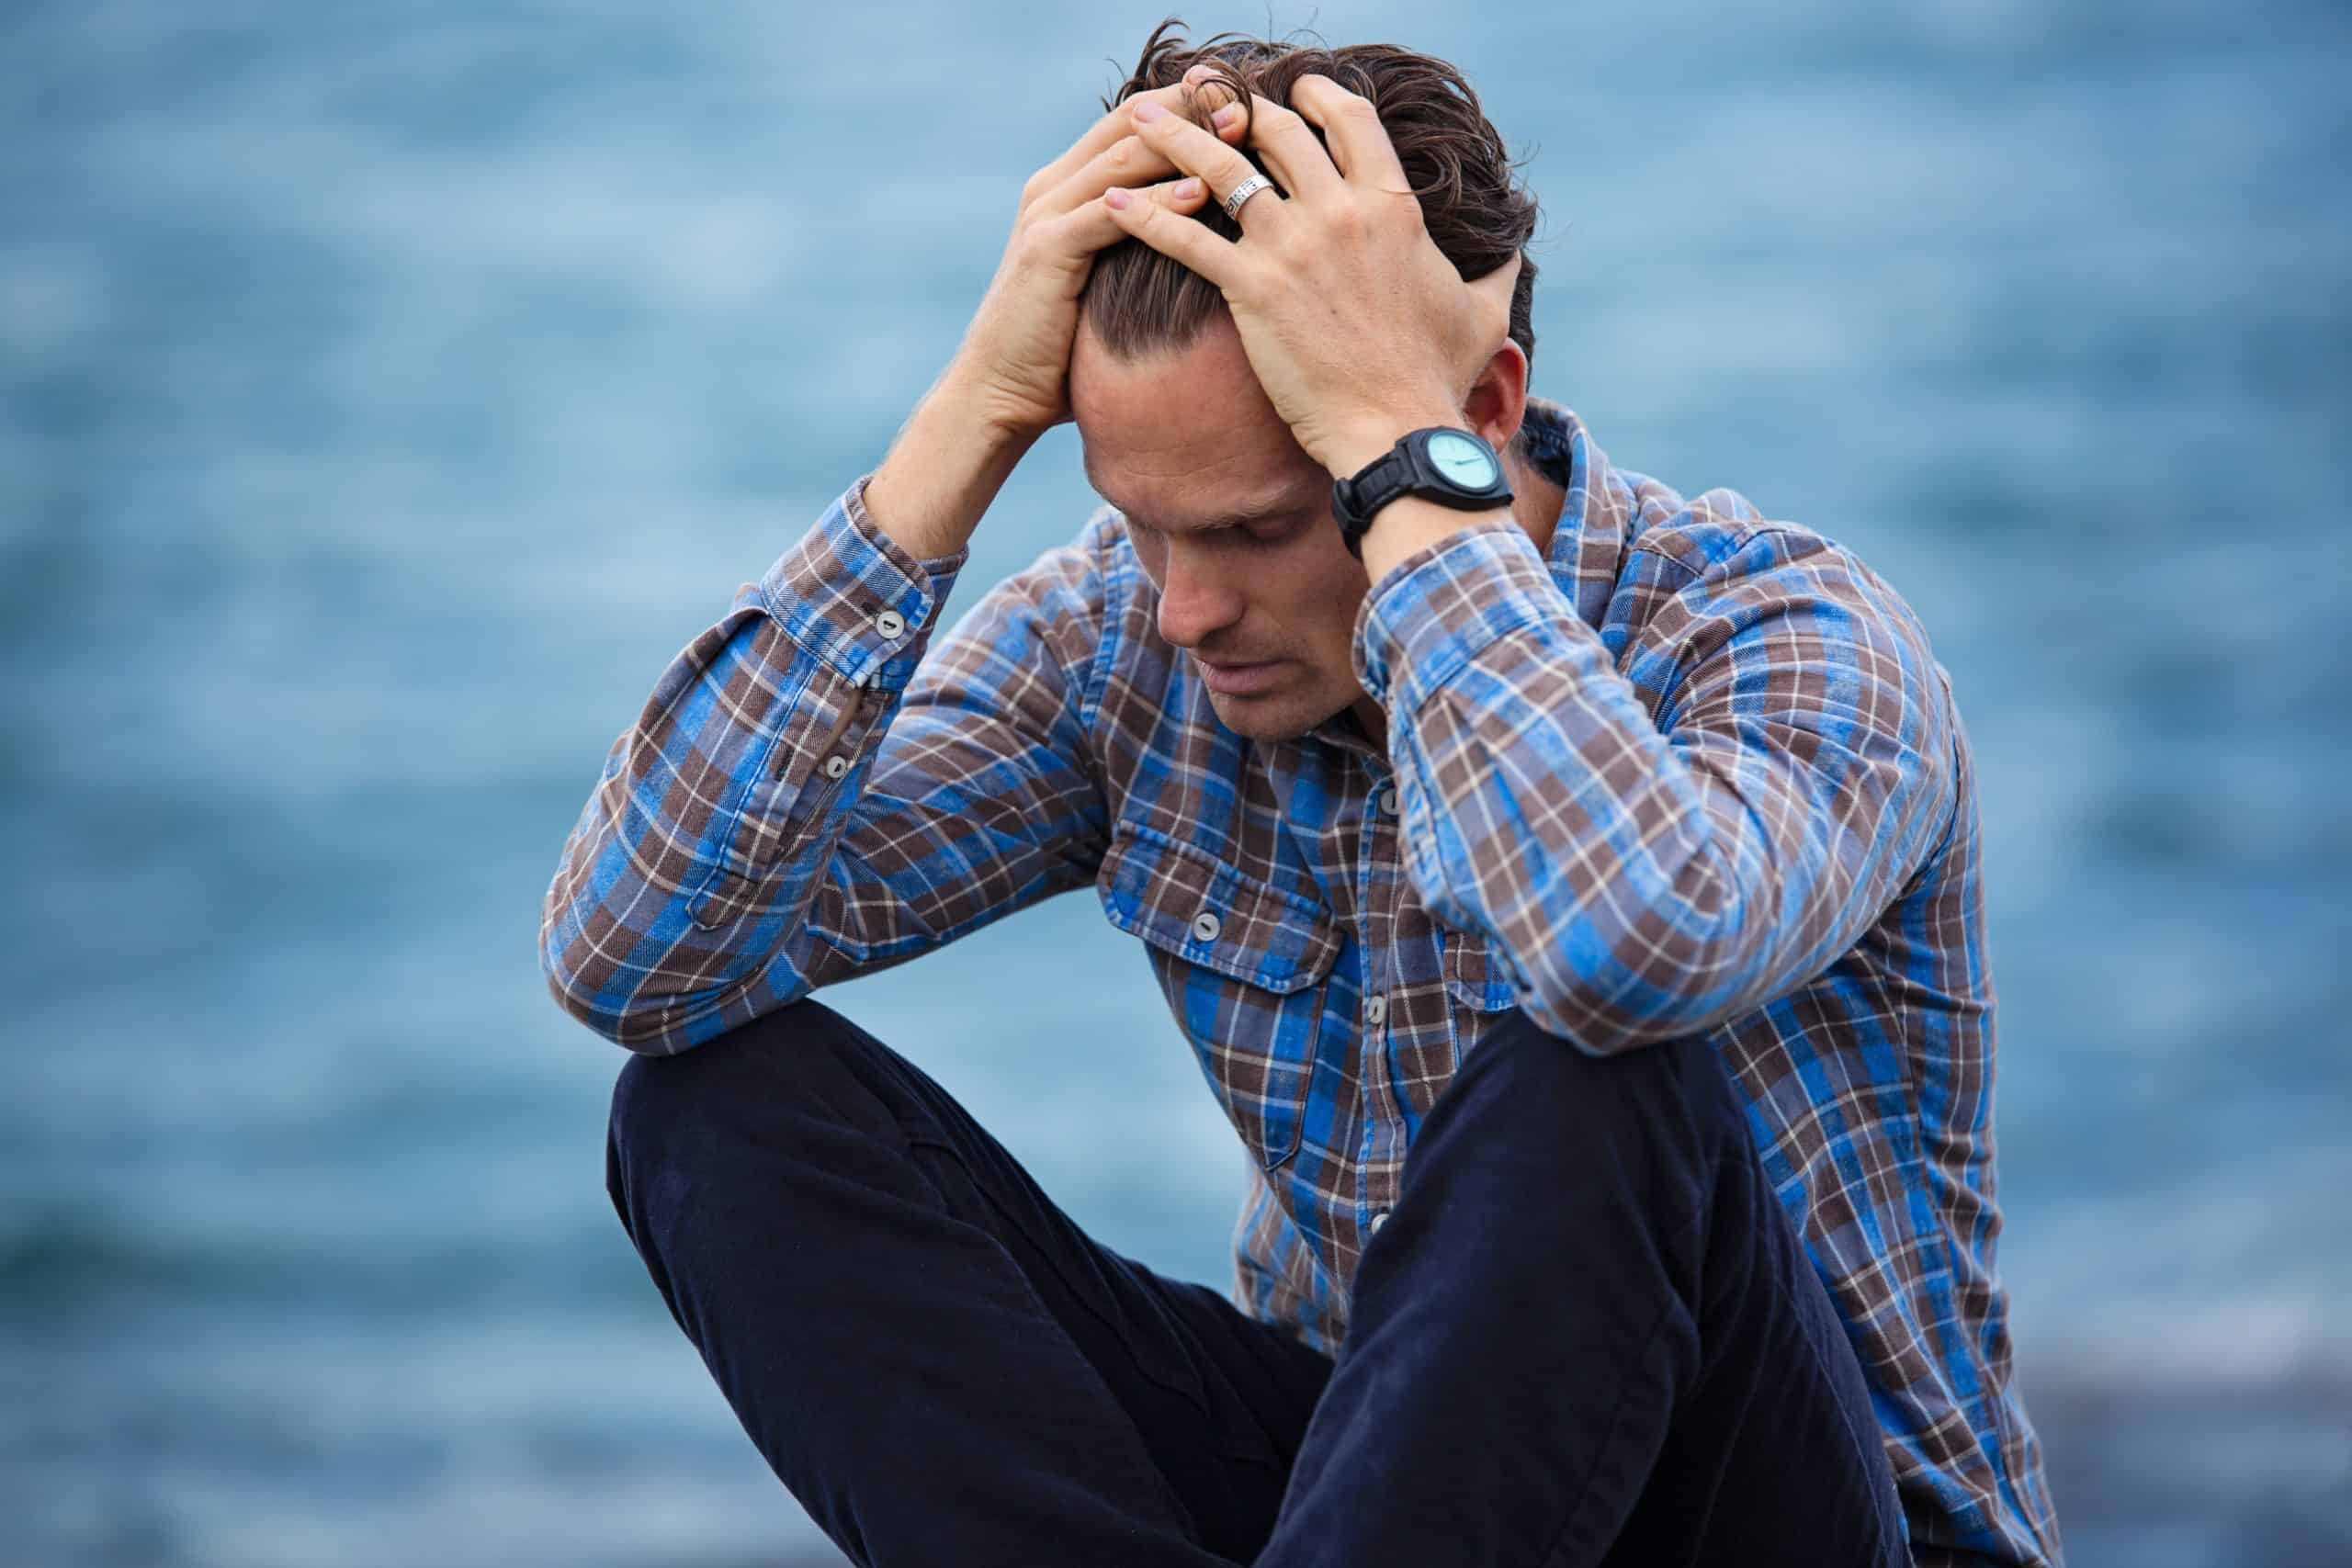 Fighting Depression - Facts About Depression